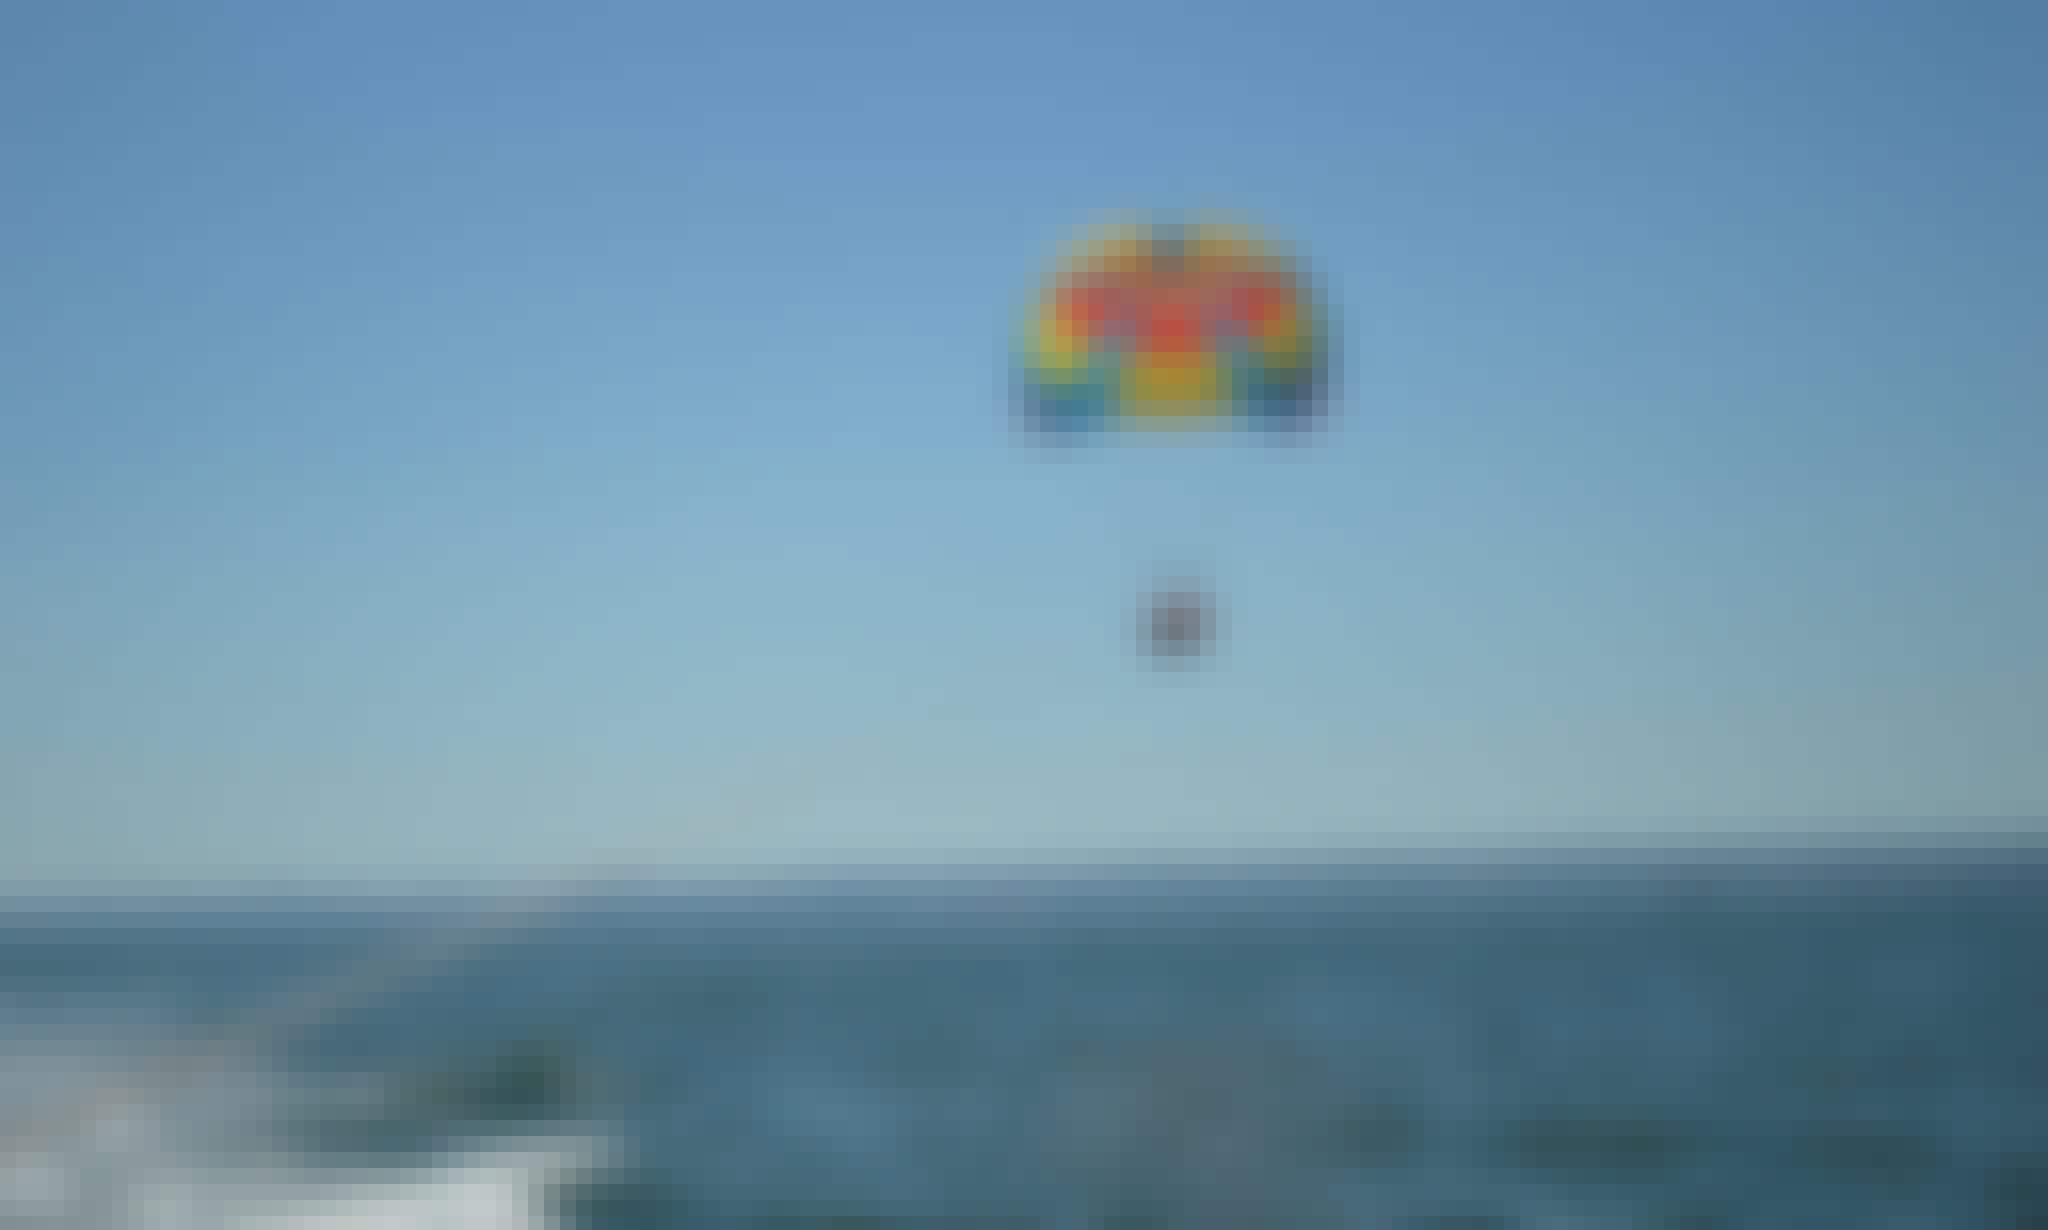 15-Minutes Parasailing Adventure for 2 People in Gdynia, Poland